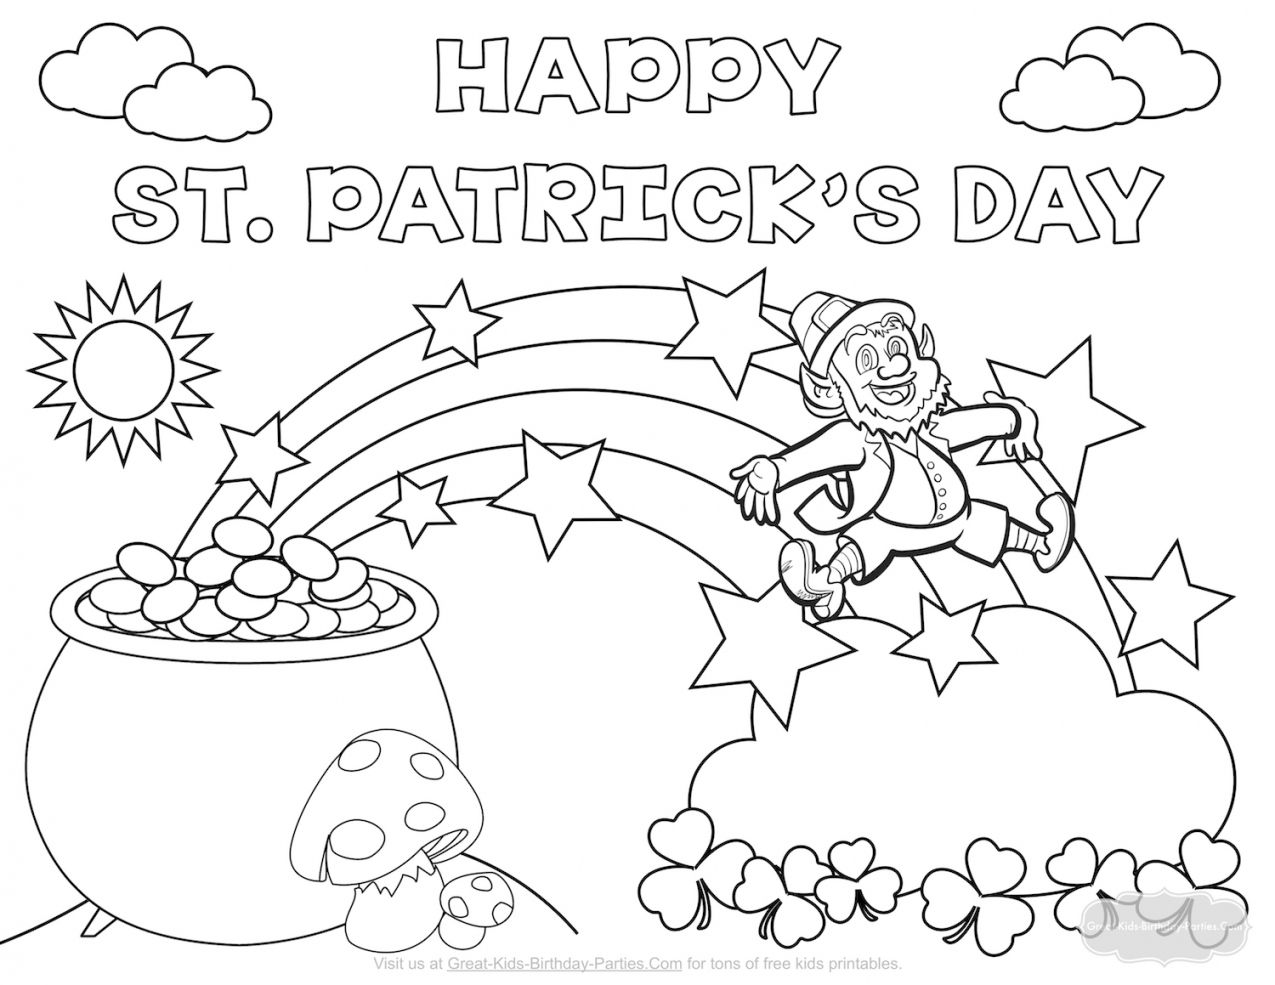 St Patricks Day Coloring Page Bertmilne Intended For Preschool